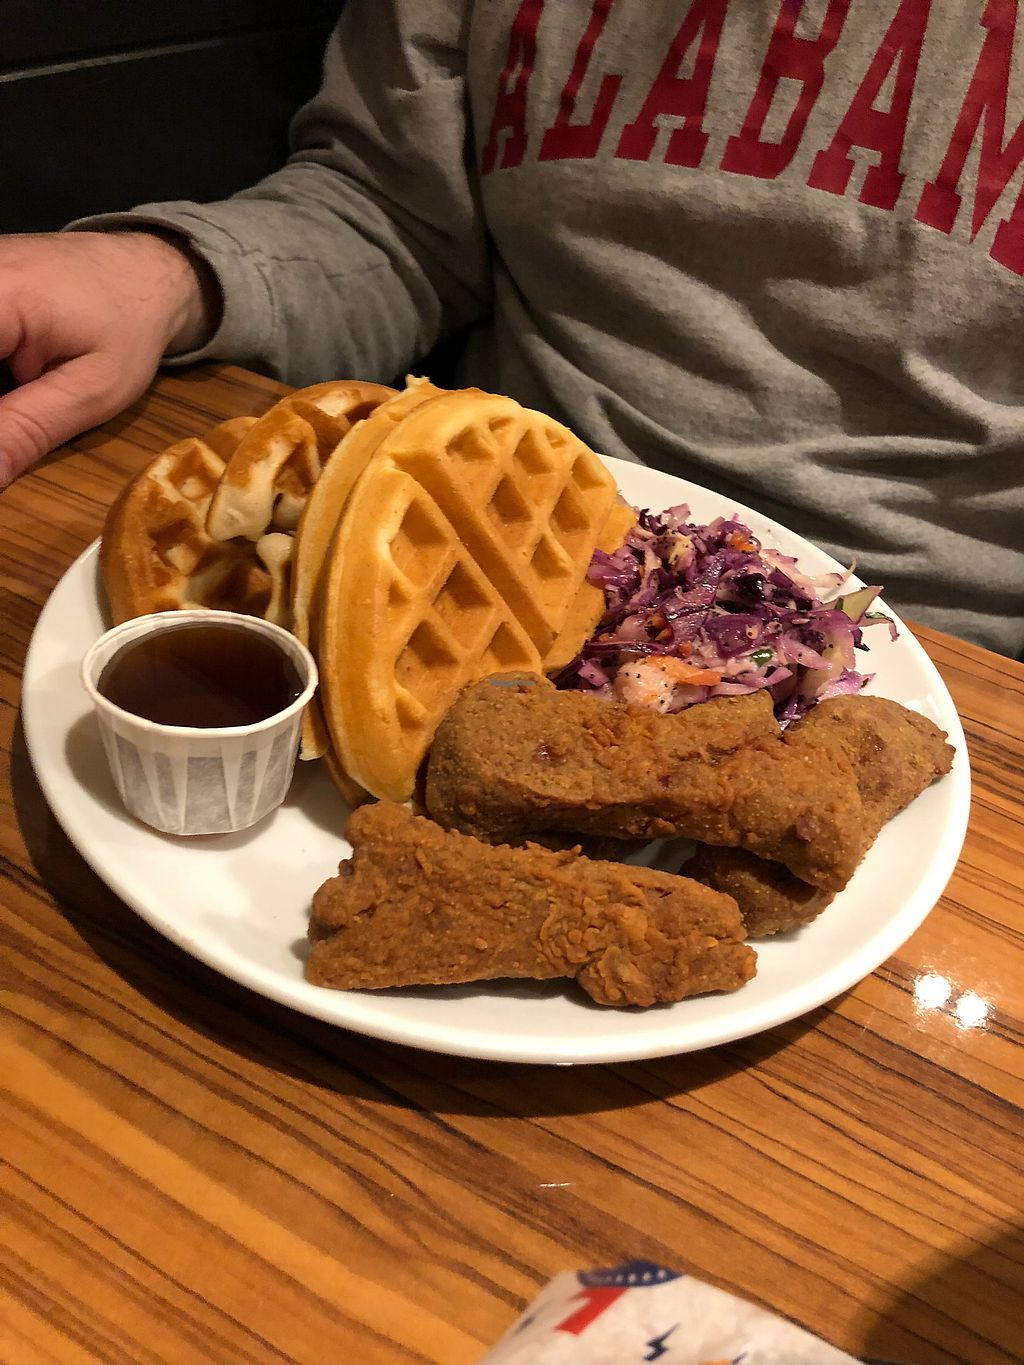 """Photo of The Diner - Islington  by <a href=""""/members/profile/CourtneyK"""">CourtneyK</a> <br/>Chicken n waffles <br/> April 13, 2018  - <a href='/contact/abuse/image/104998/384955'>Report</a>"""